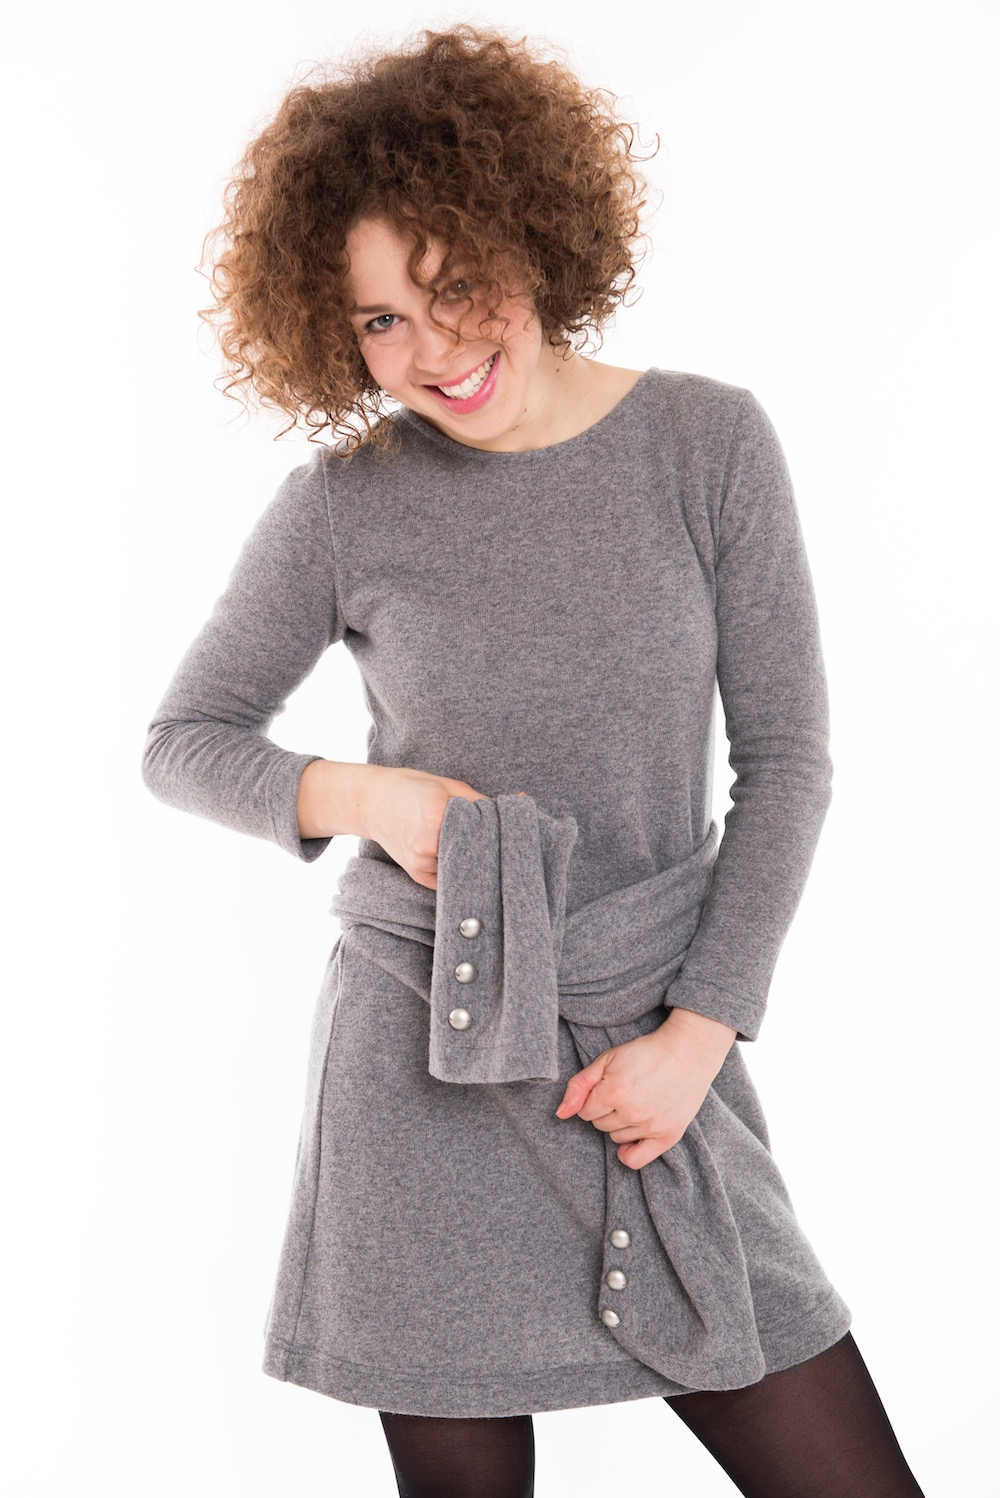 Short sweater dress in grey wool EASY